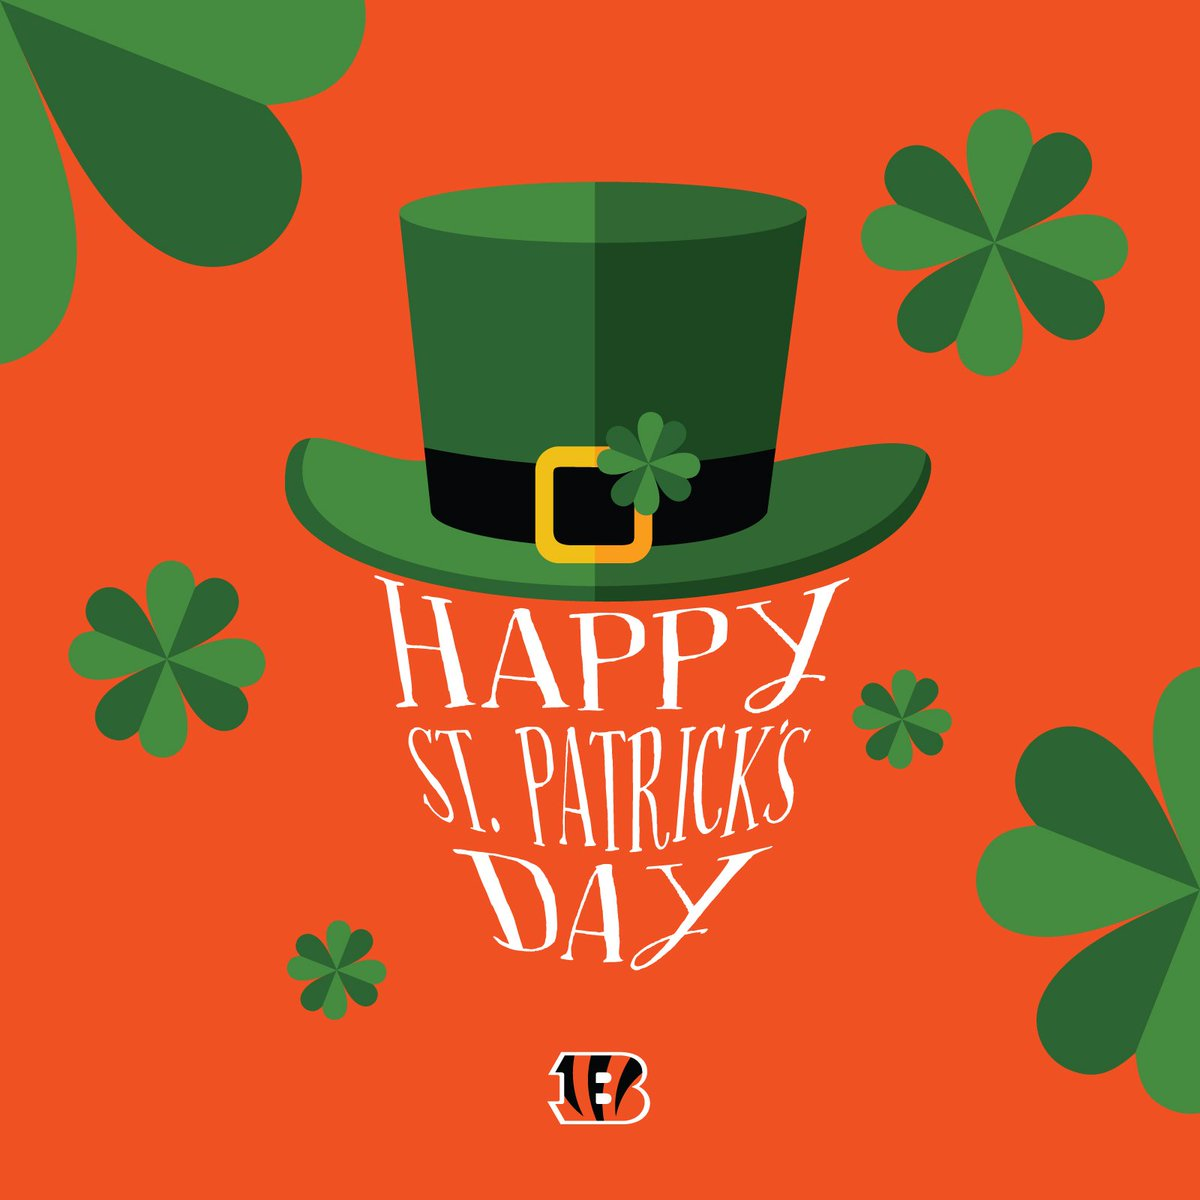 Cincinnati Bengals On Twitter The Flag Of Ireland Is Green White And Orange We Can Dig It Have A Happy And Safe St Patrick S Day Who Dey Fans A while back, we posted a compilation of the different flags of the lgbtiq community on our instagram account. cincinnati bengals on twitter the